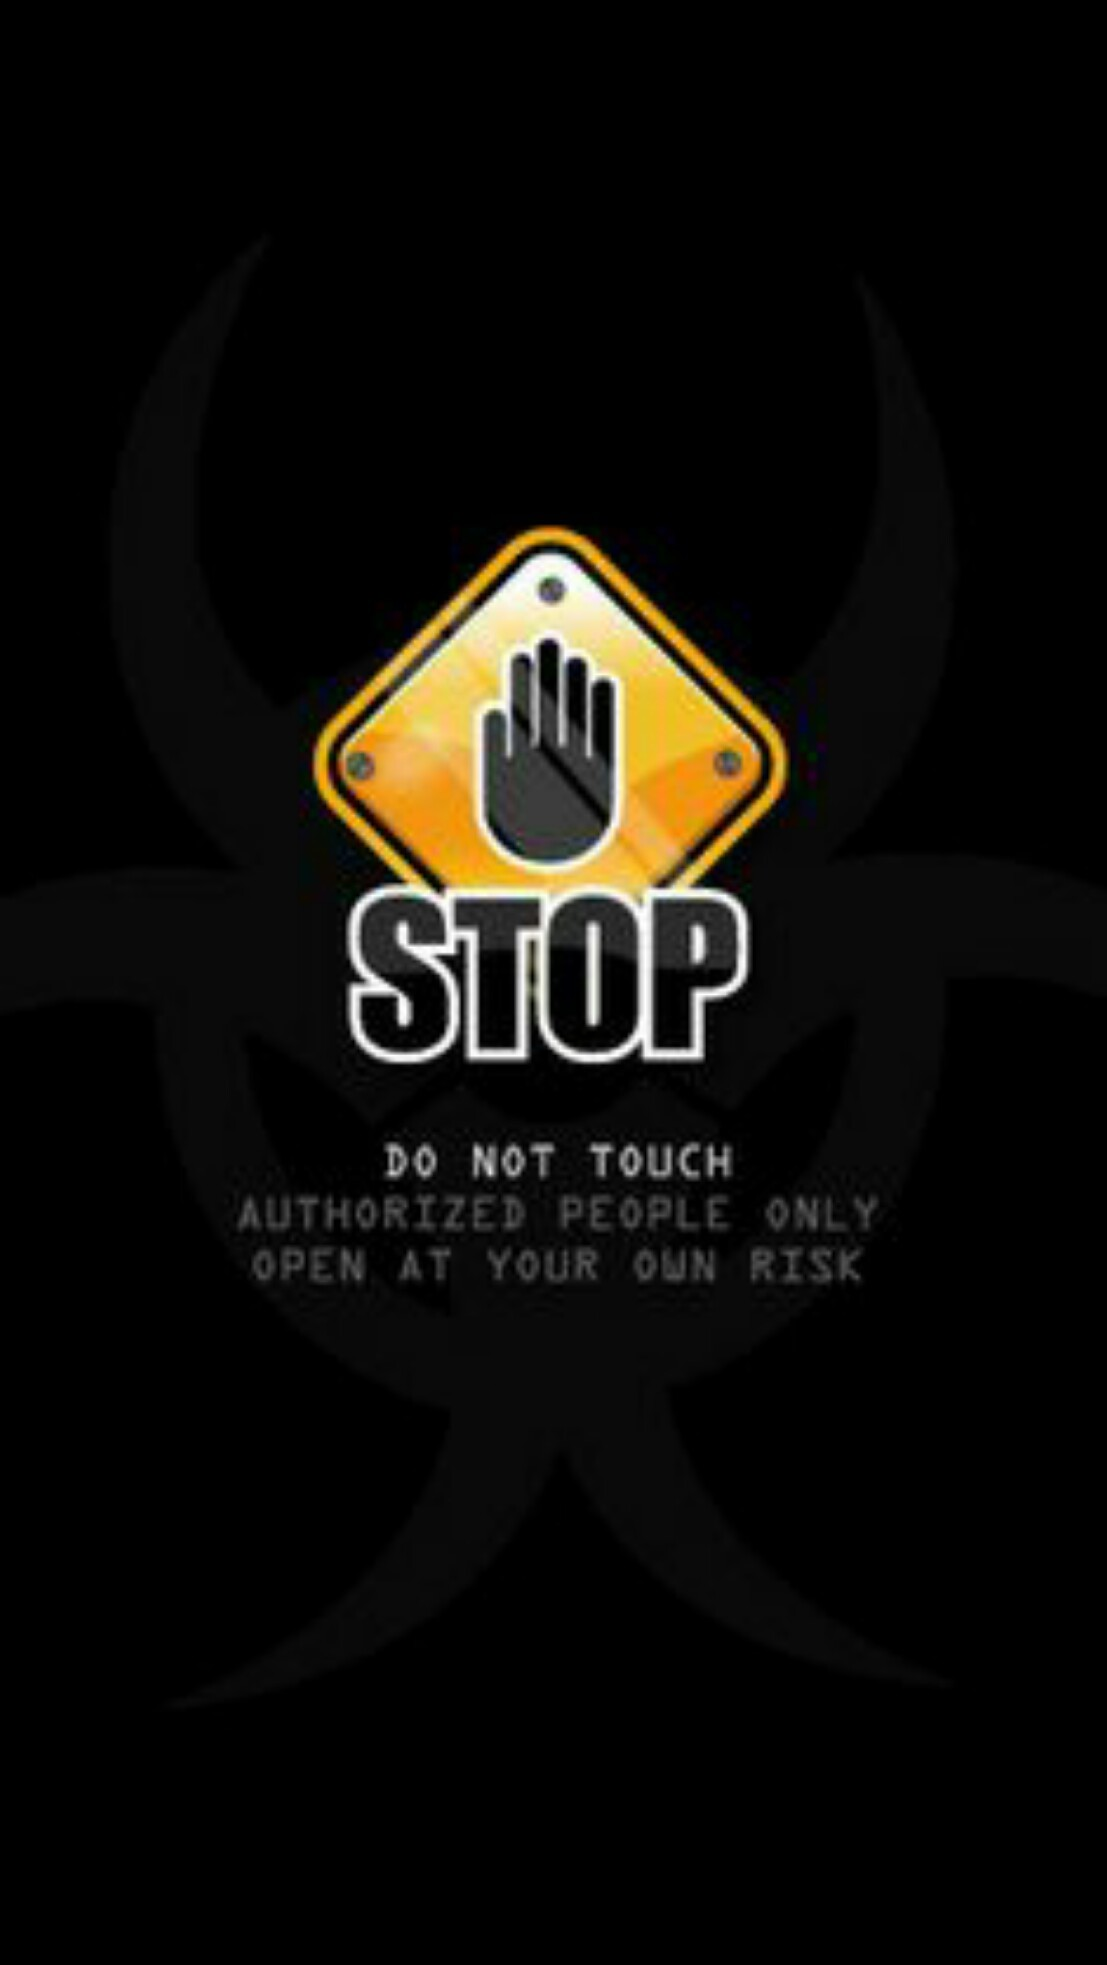 #sexy #stop #black #wallpaper #android #iphone